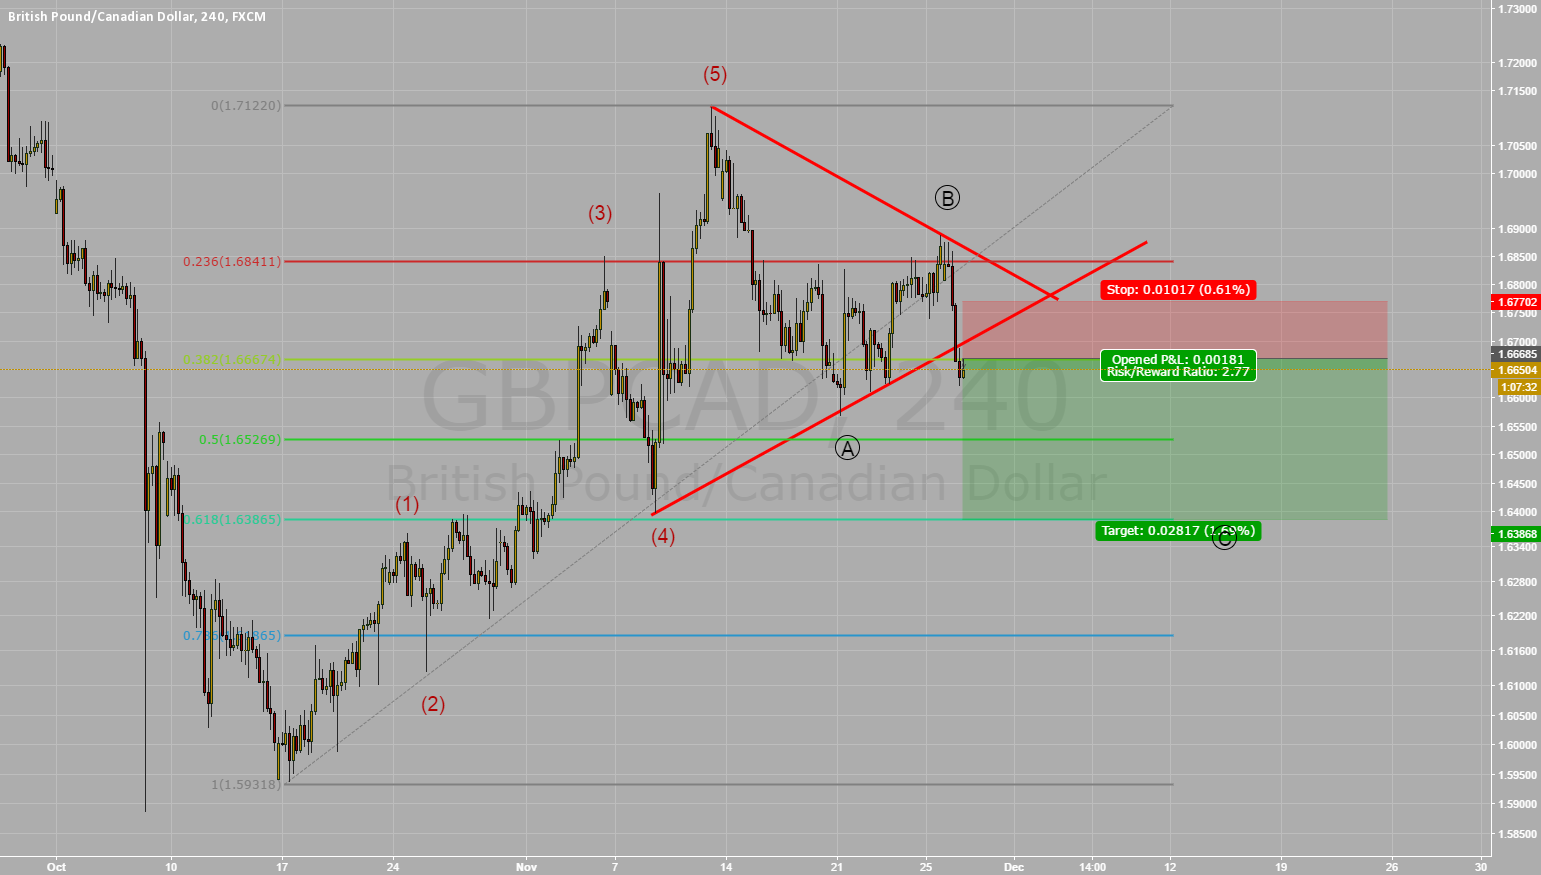 Short GBP/CAD Triangle Breakout Correctiv ABC